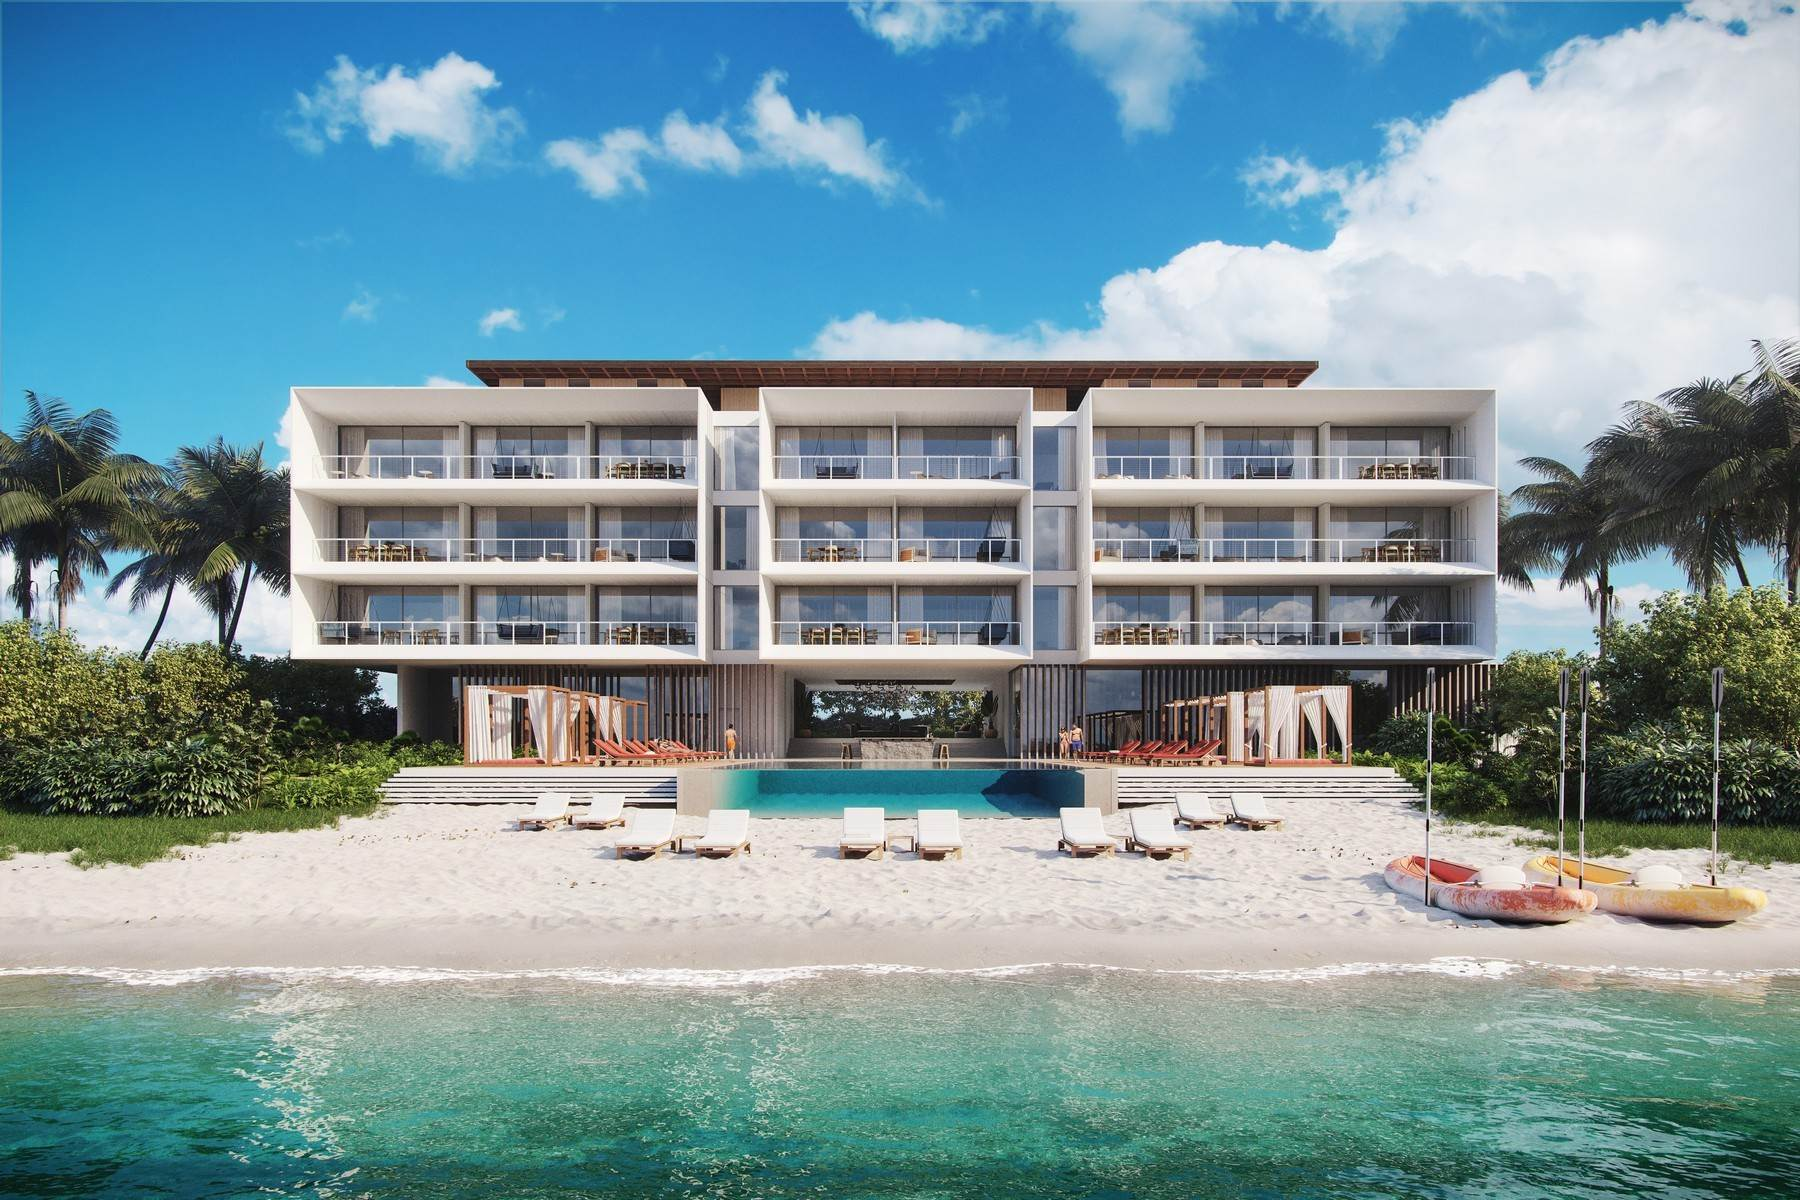 7. Condominiums for Sale at Club Residence Two Bedroom 21/22 Beach Enclave Long Bay, Long Bay, Providenciales Turks And Caicos Islands